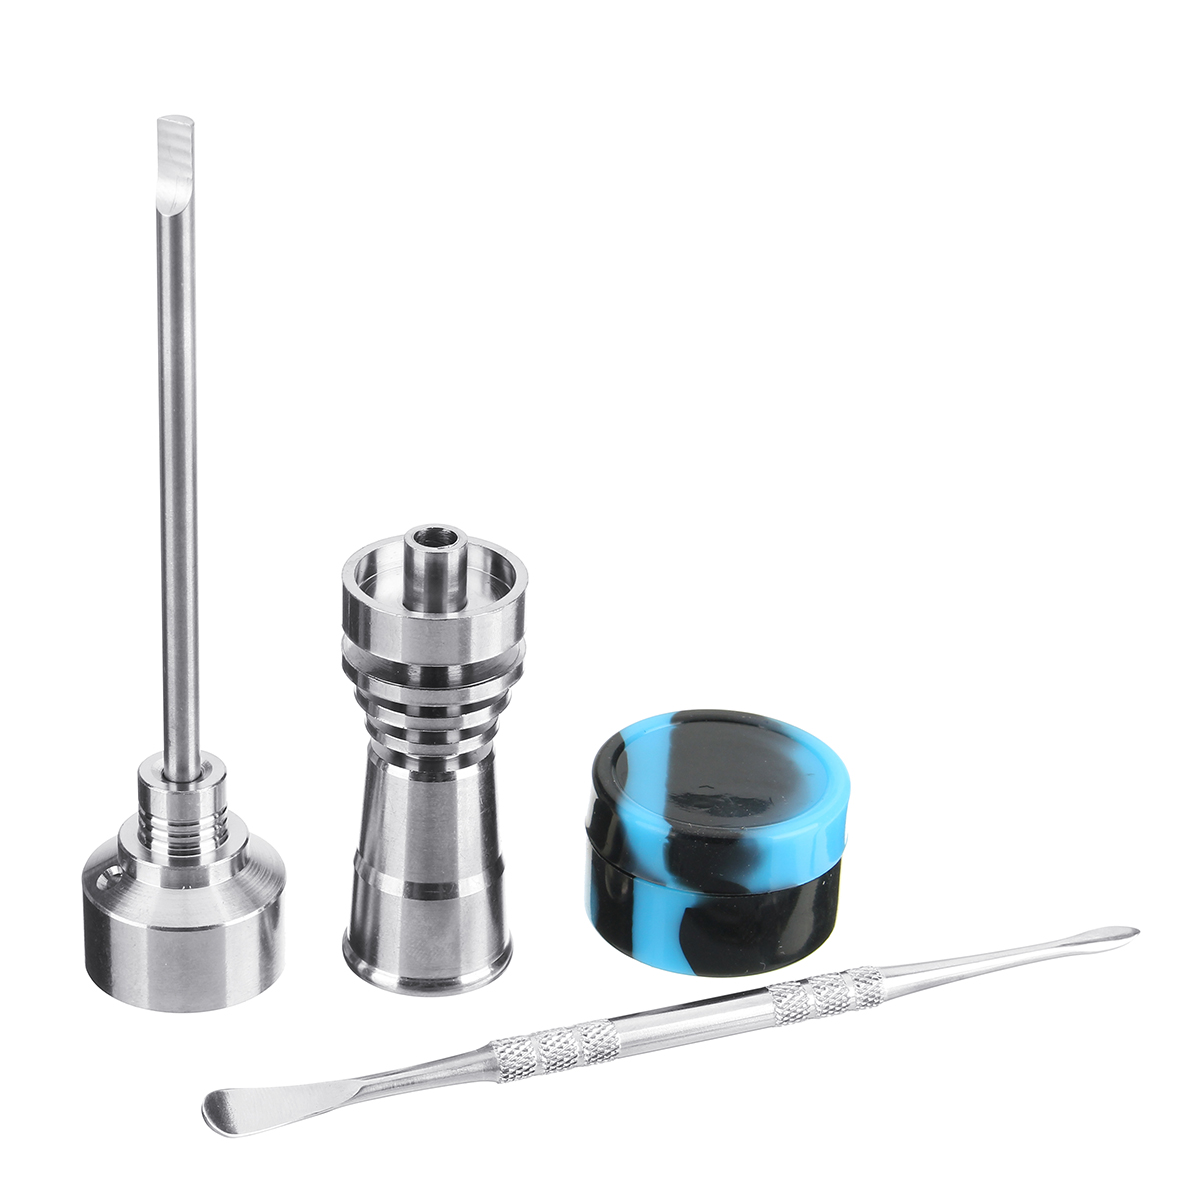 14/18MM Silicone Jar Tool Titanium Nail Carb Cap Dab Dabber Drill Female Male